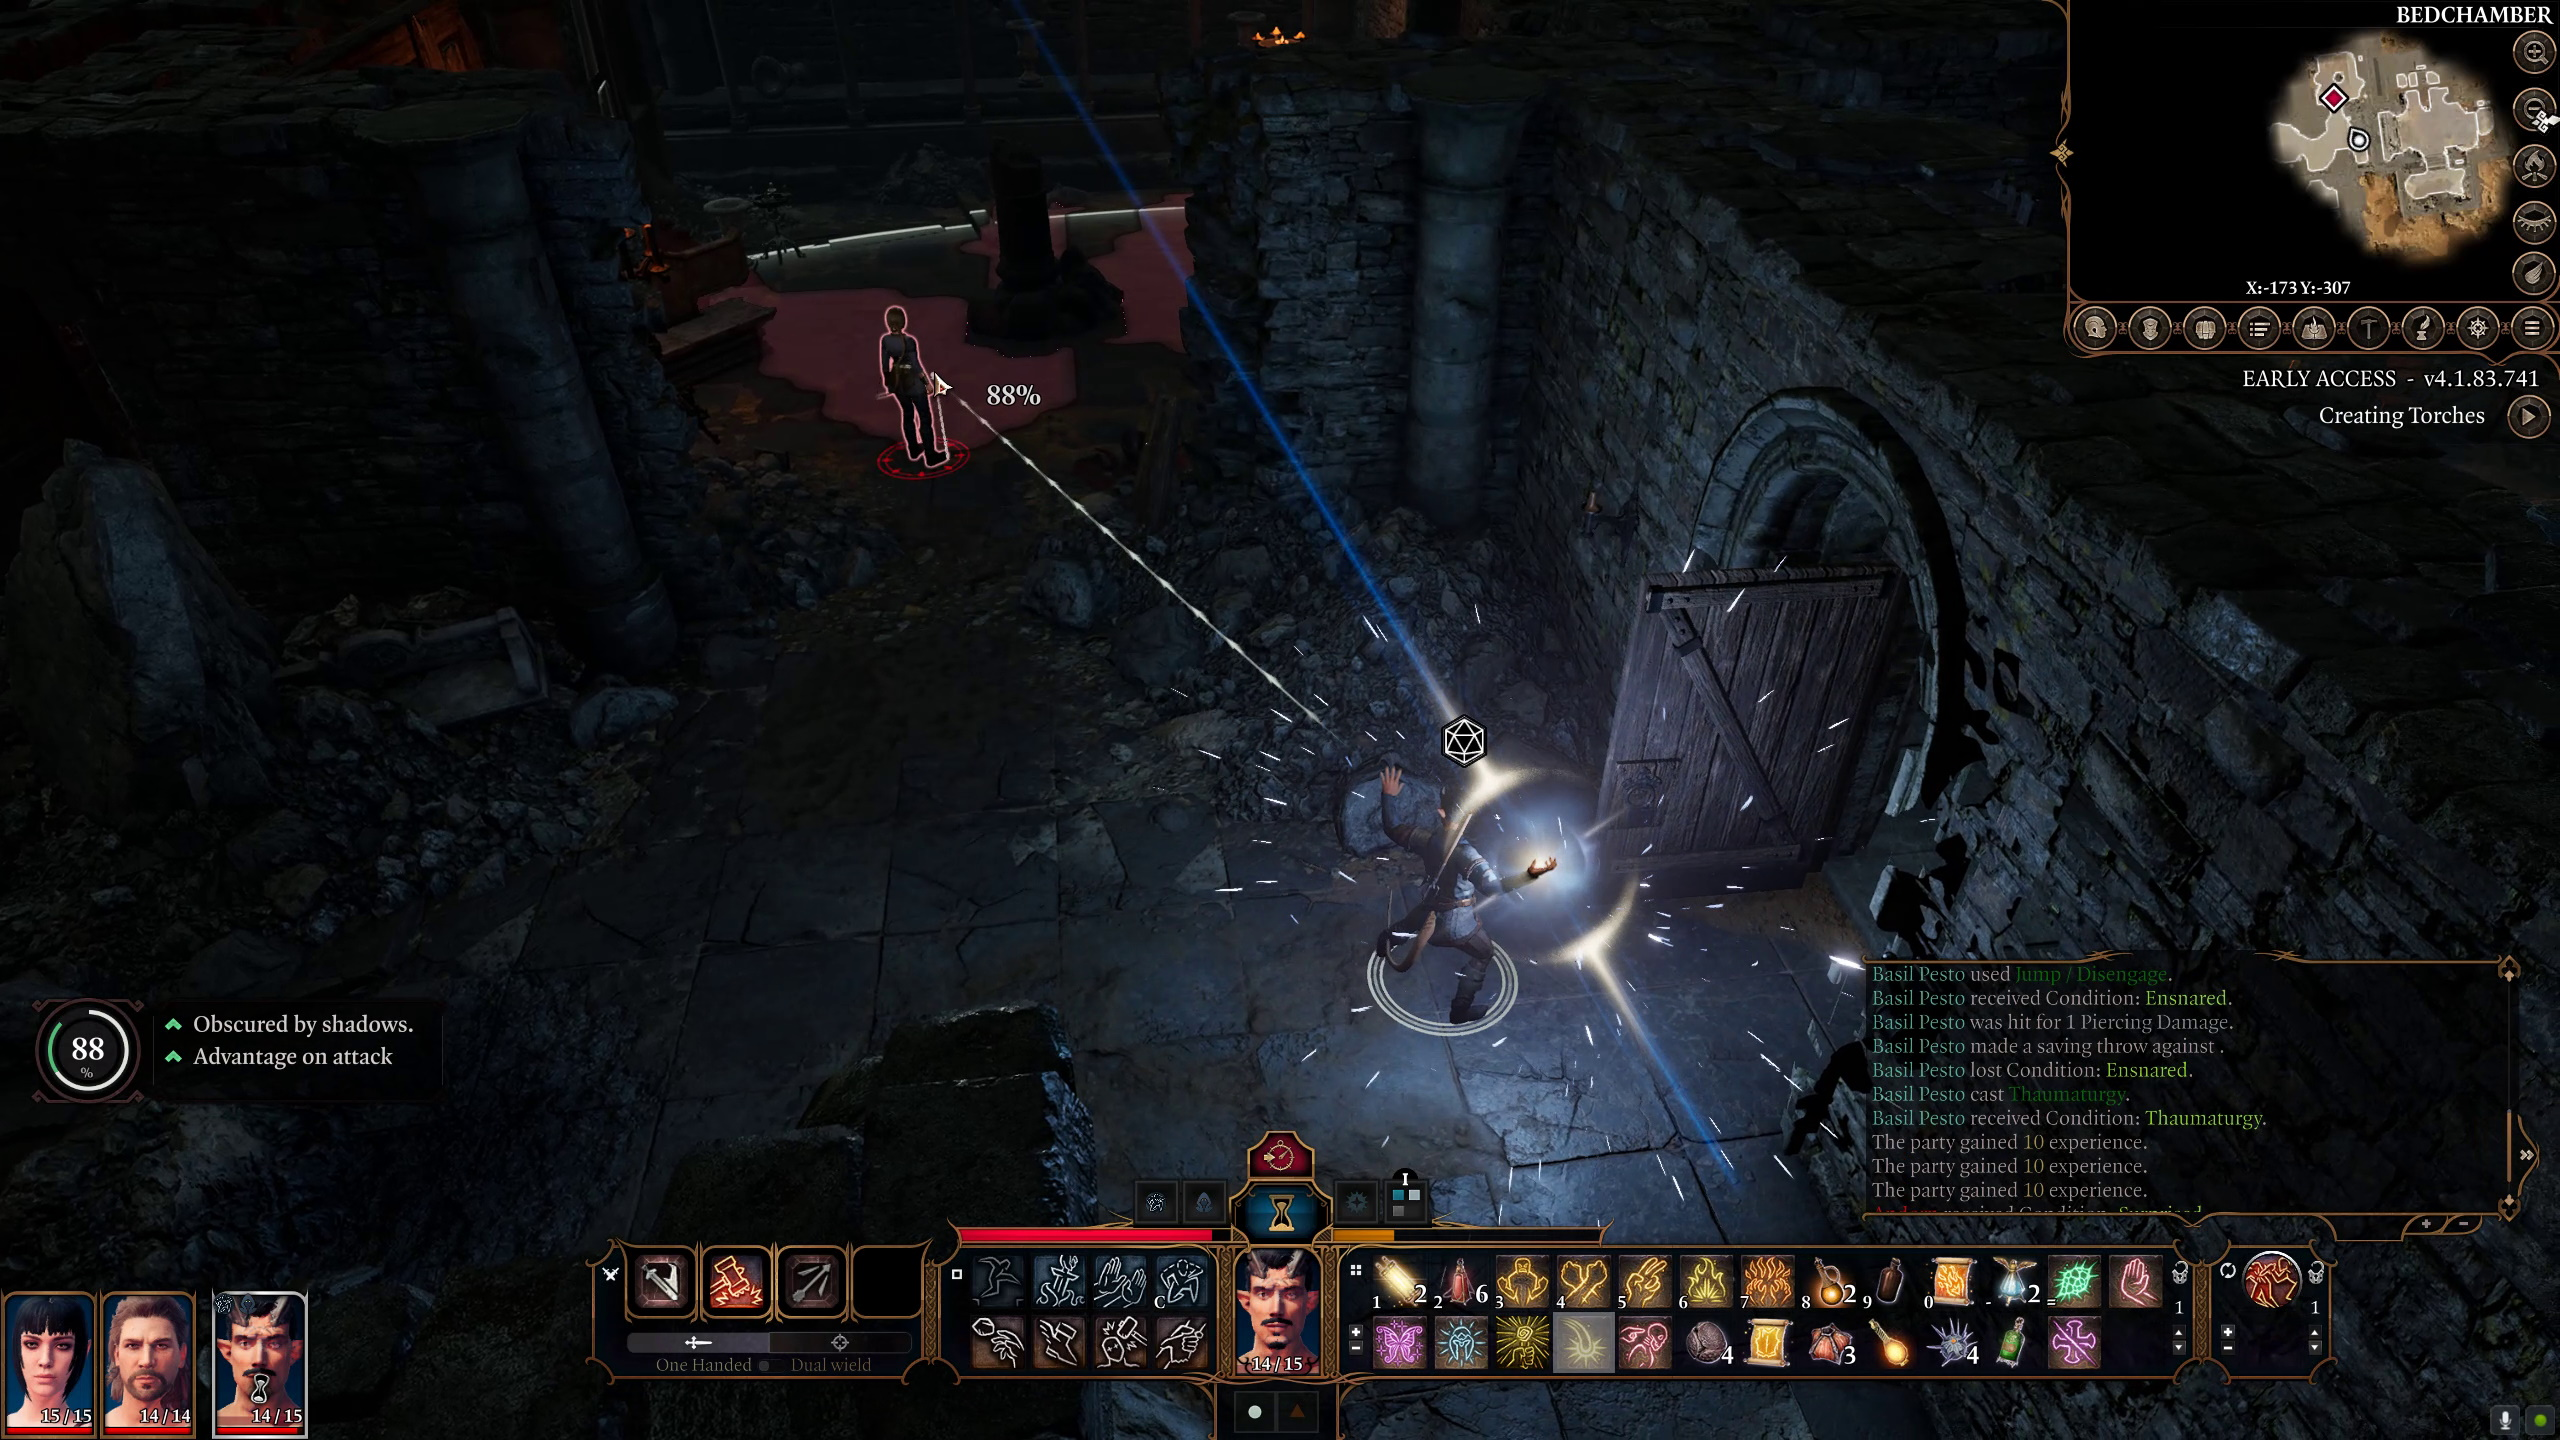 A screenshot from Baldur's Gate 3 showing a character in an underground stone dungeon, casting a spell whilst sneaking at an unsuspecting guard